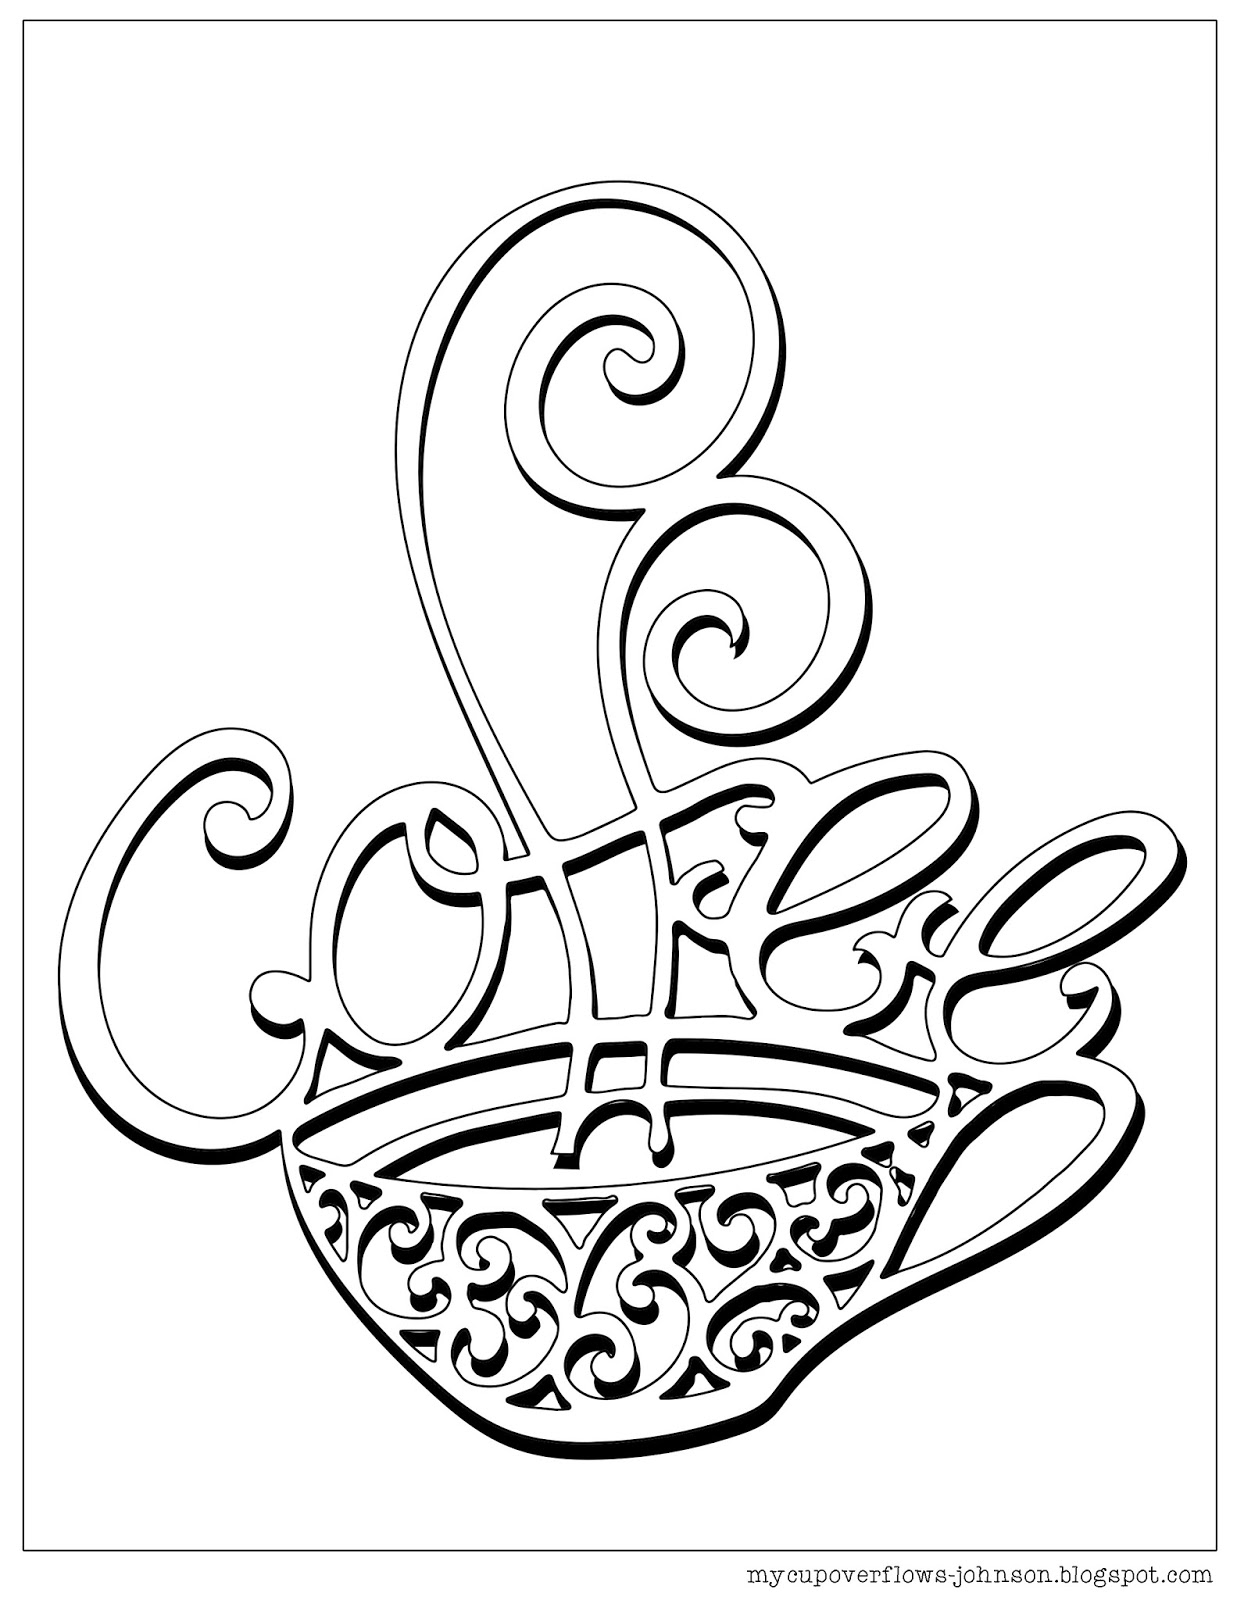 It is a picture of Ambitious Coffee Cup Coloring Page